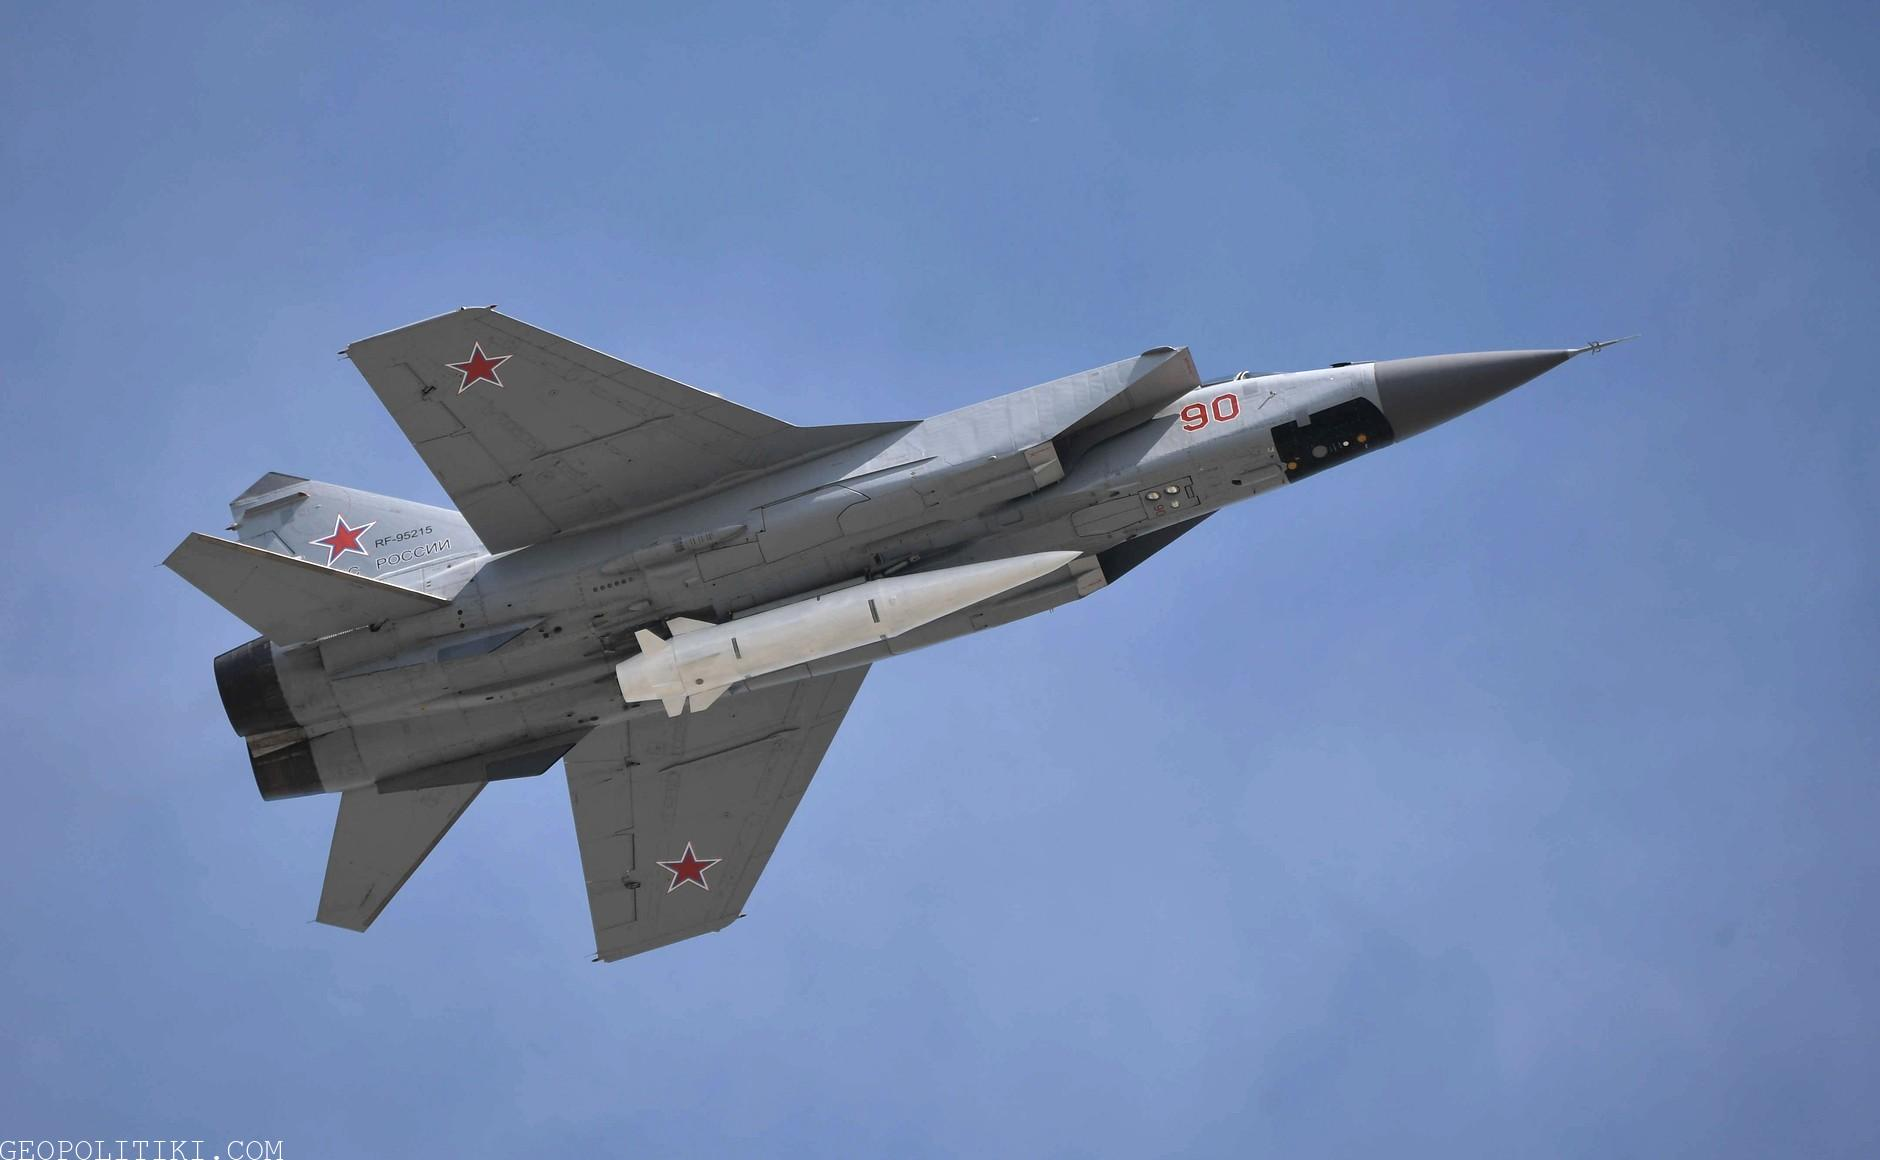 Russia will significantly increase its hypersonic missile arsenal